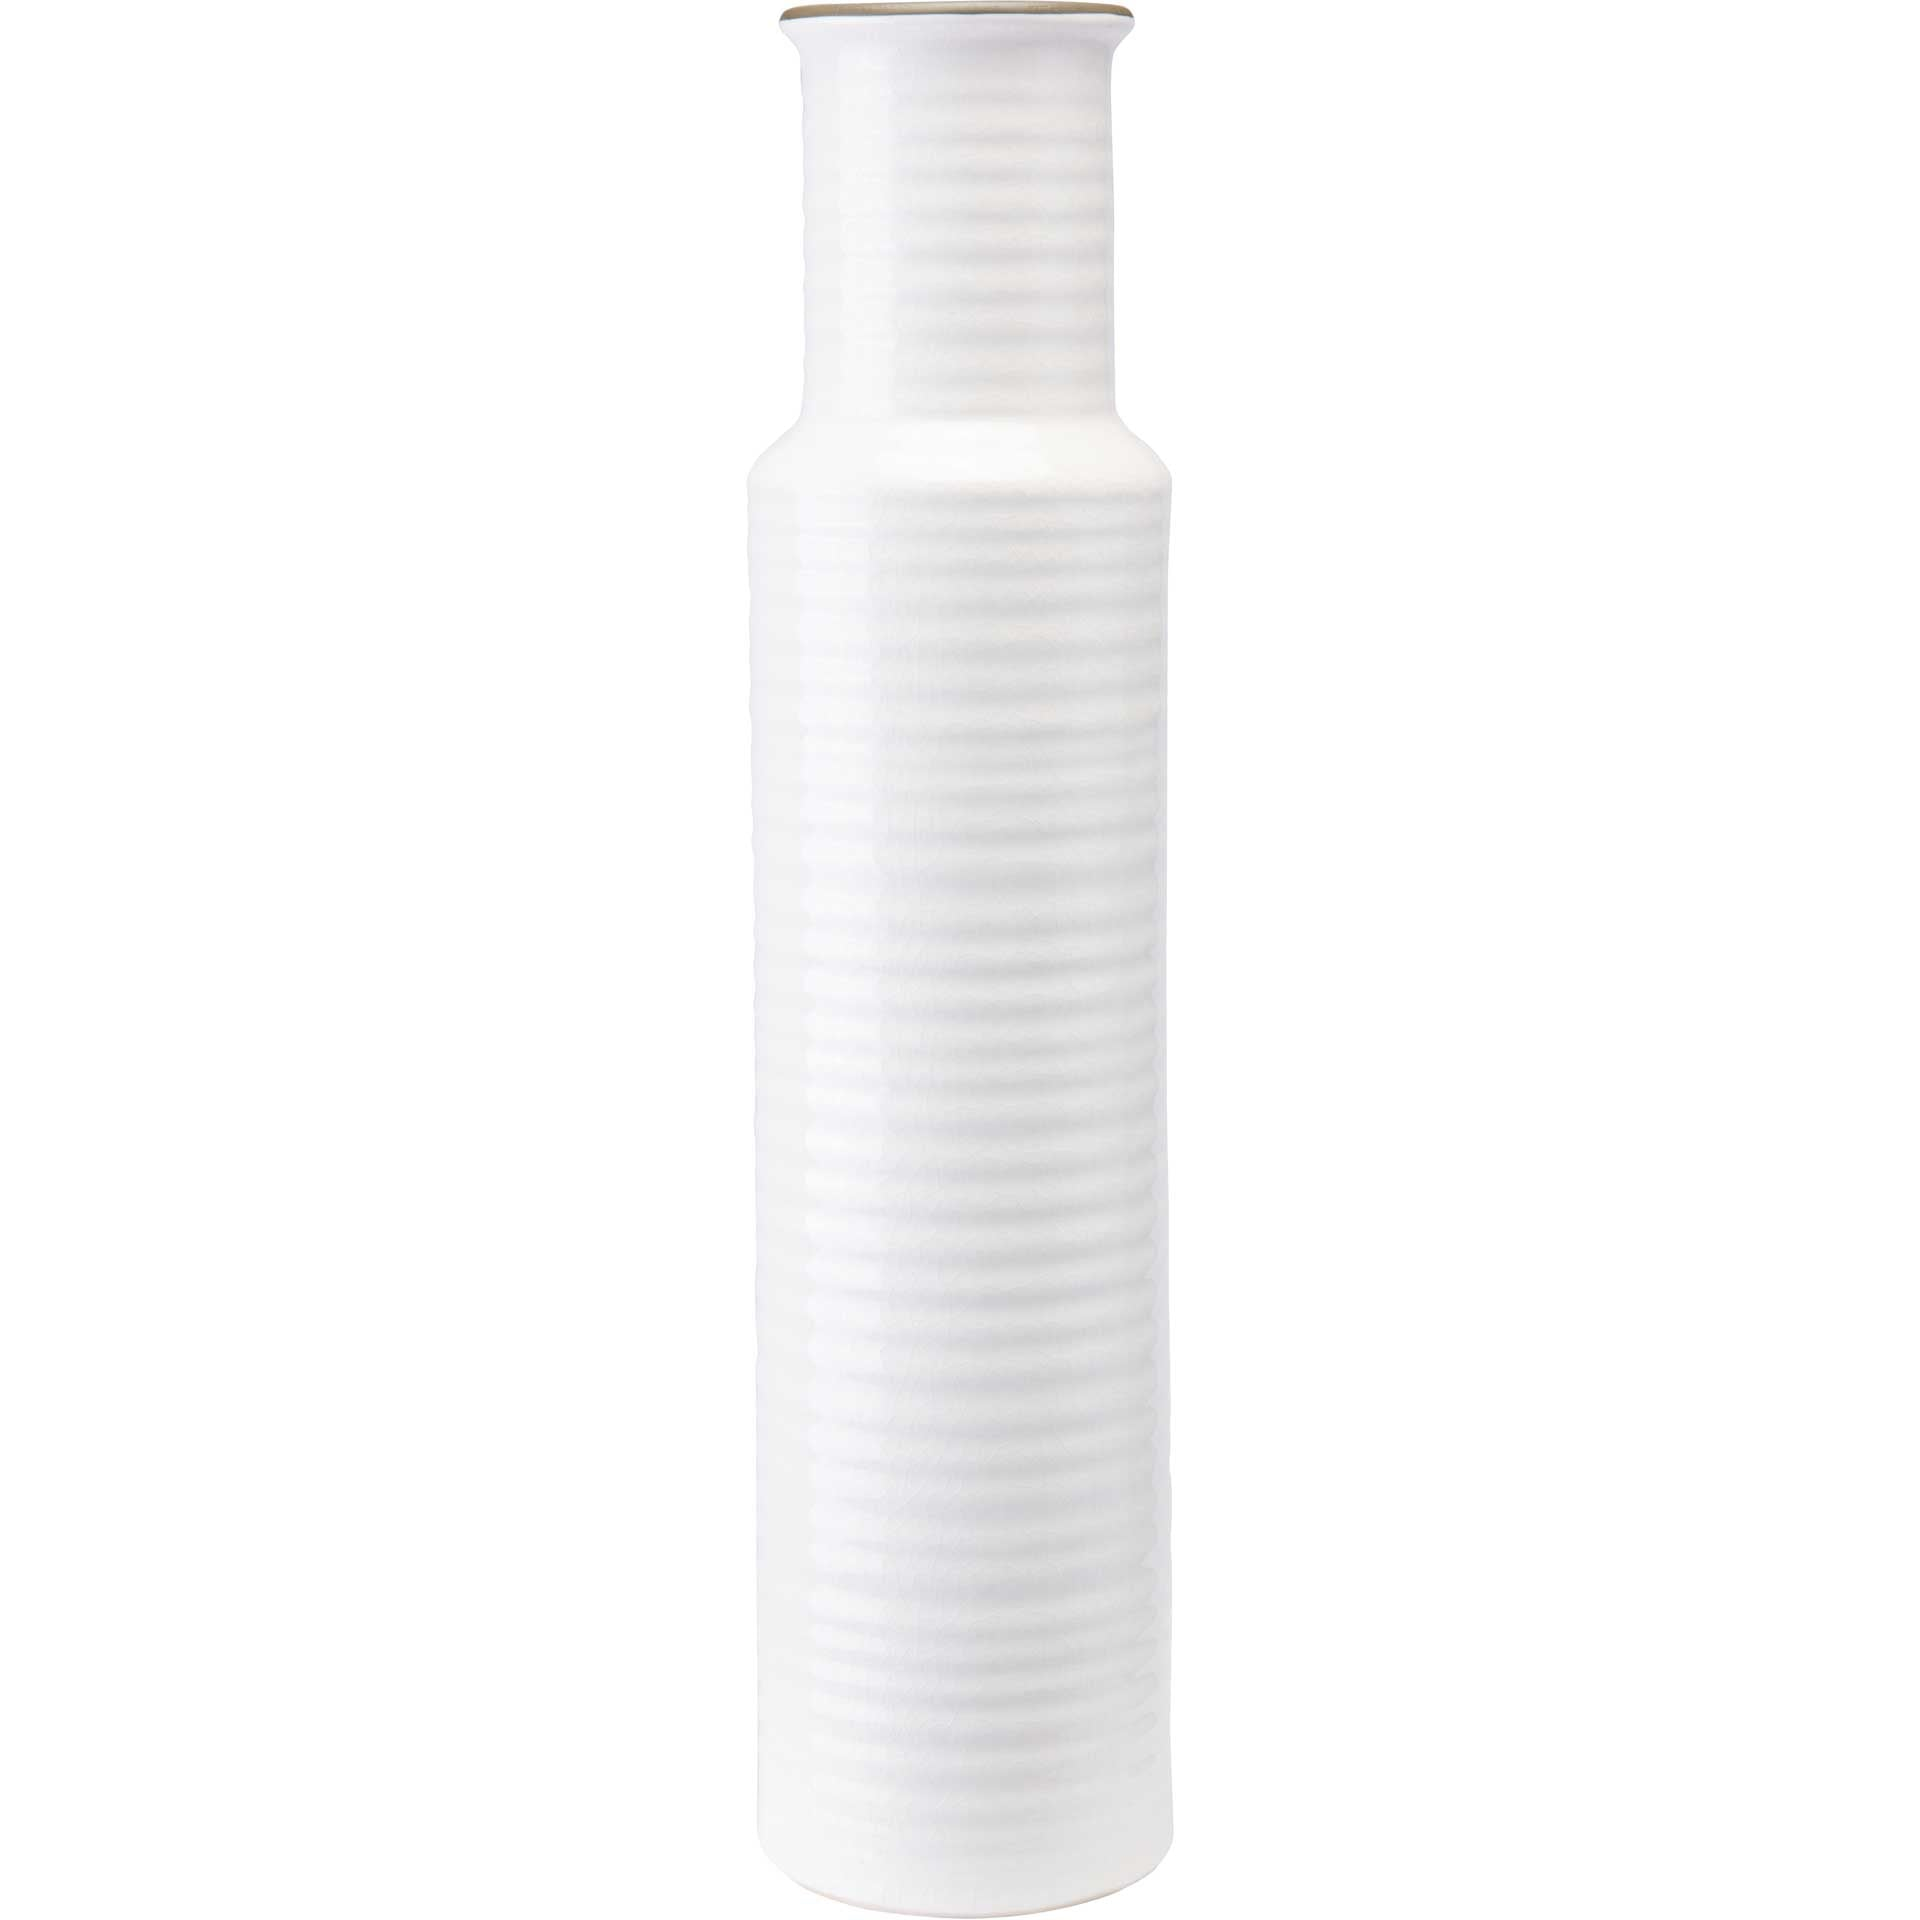 Ripple Bottle White